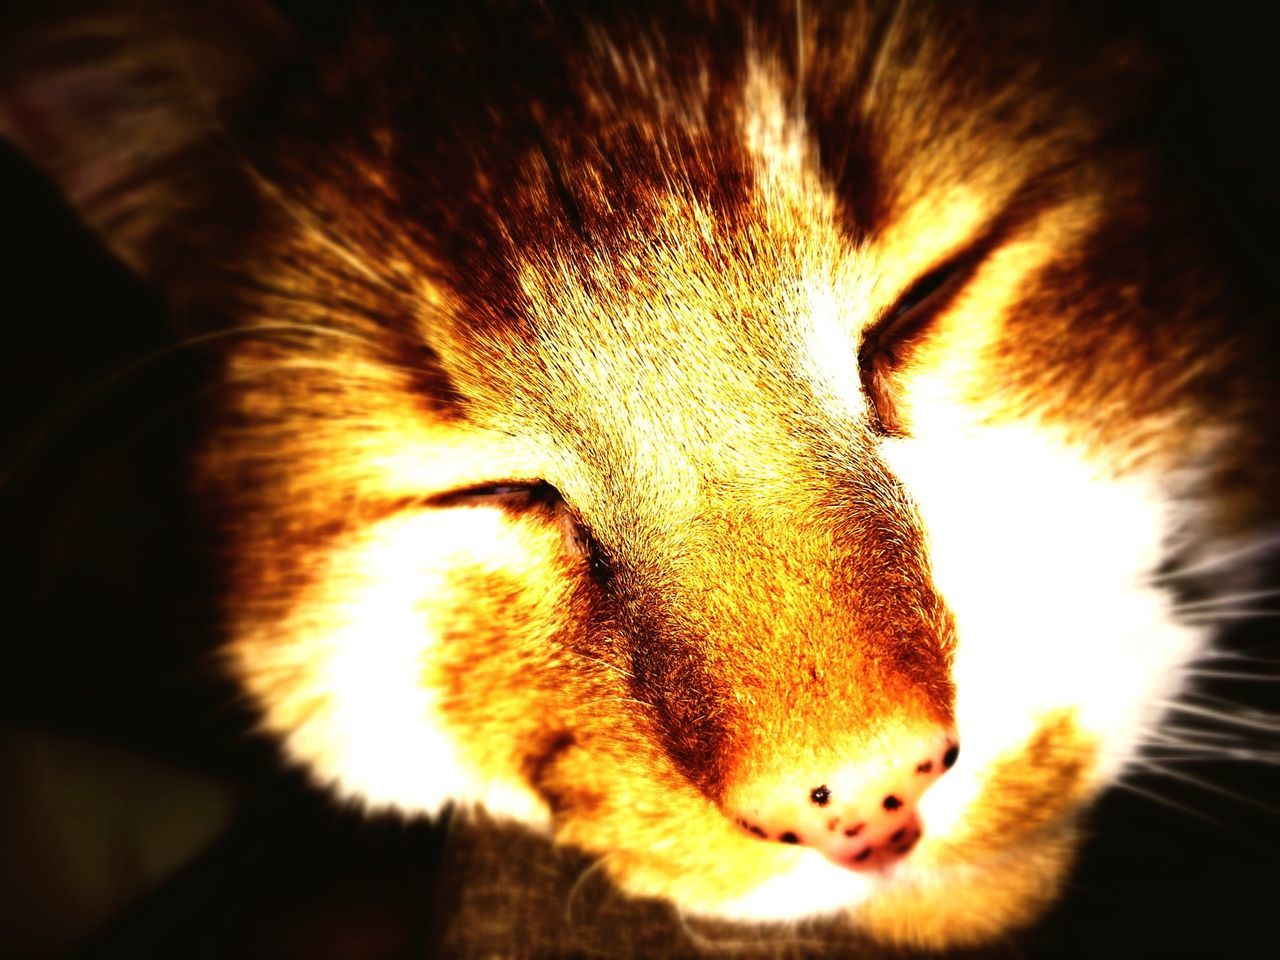 one animal, animal themes, domestic cat, mammal, domestic animals, pets, indoors, feline, close-up, no people, relaxation, portrait, day